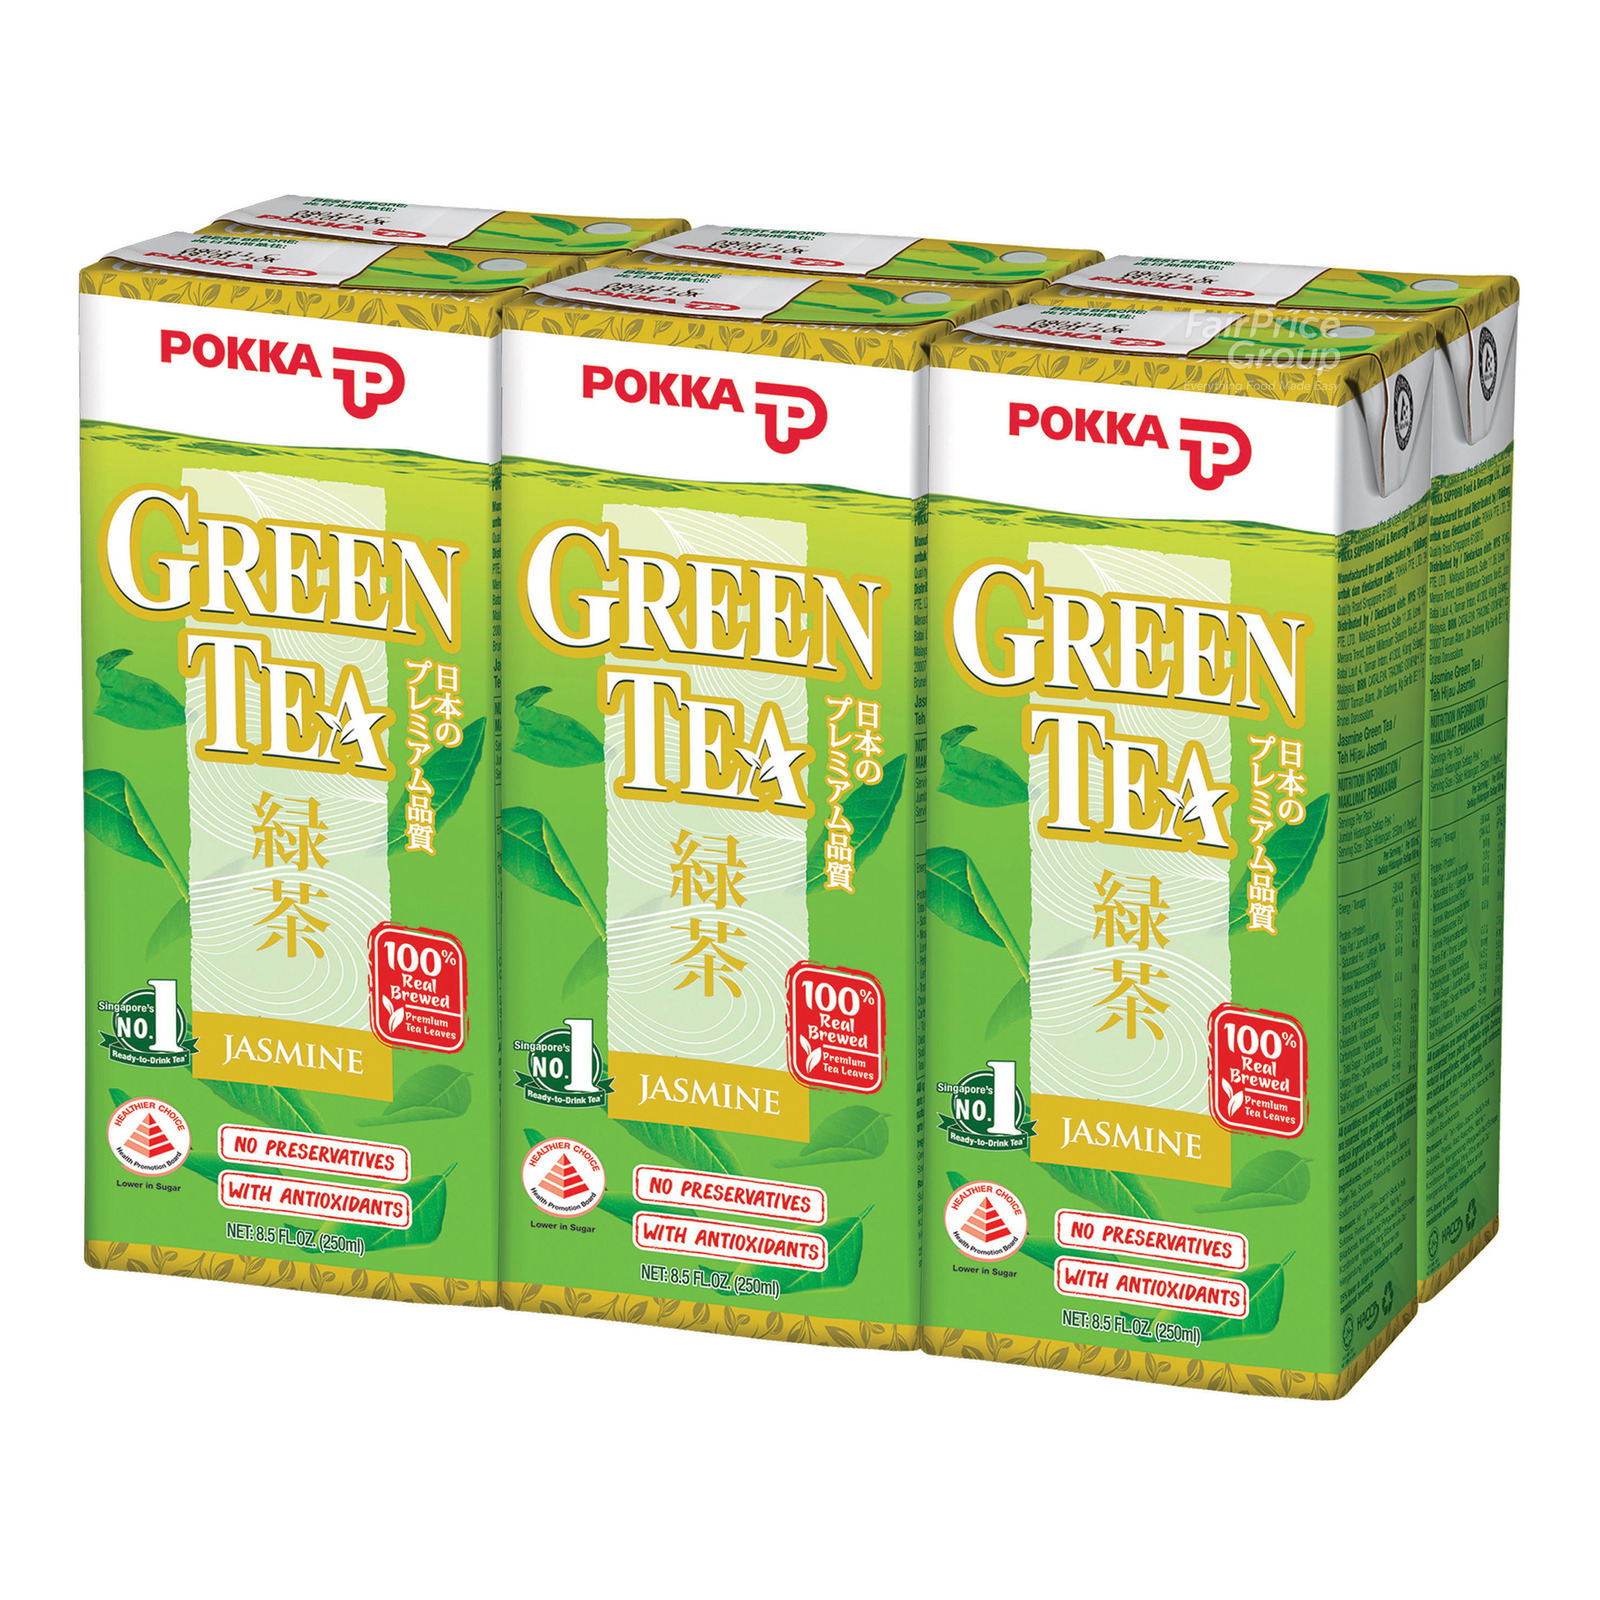 Pokka Packet Drink - Jasmine Green Tea